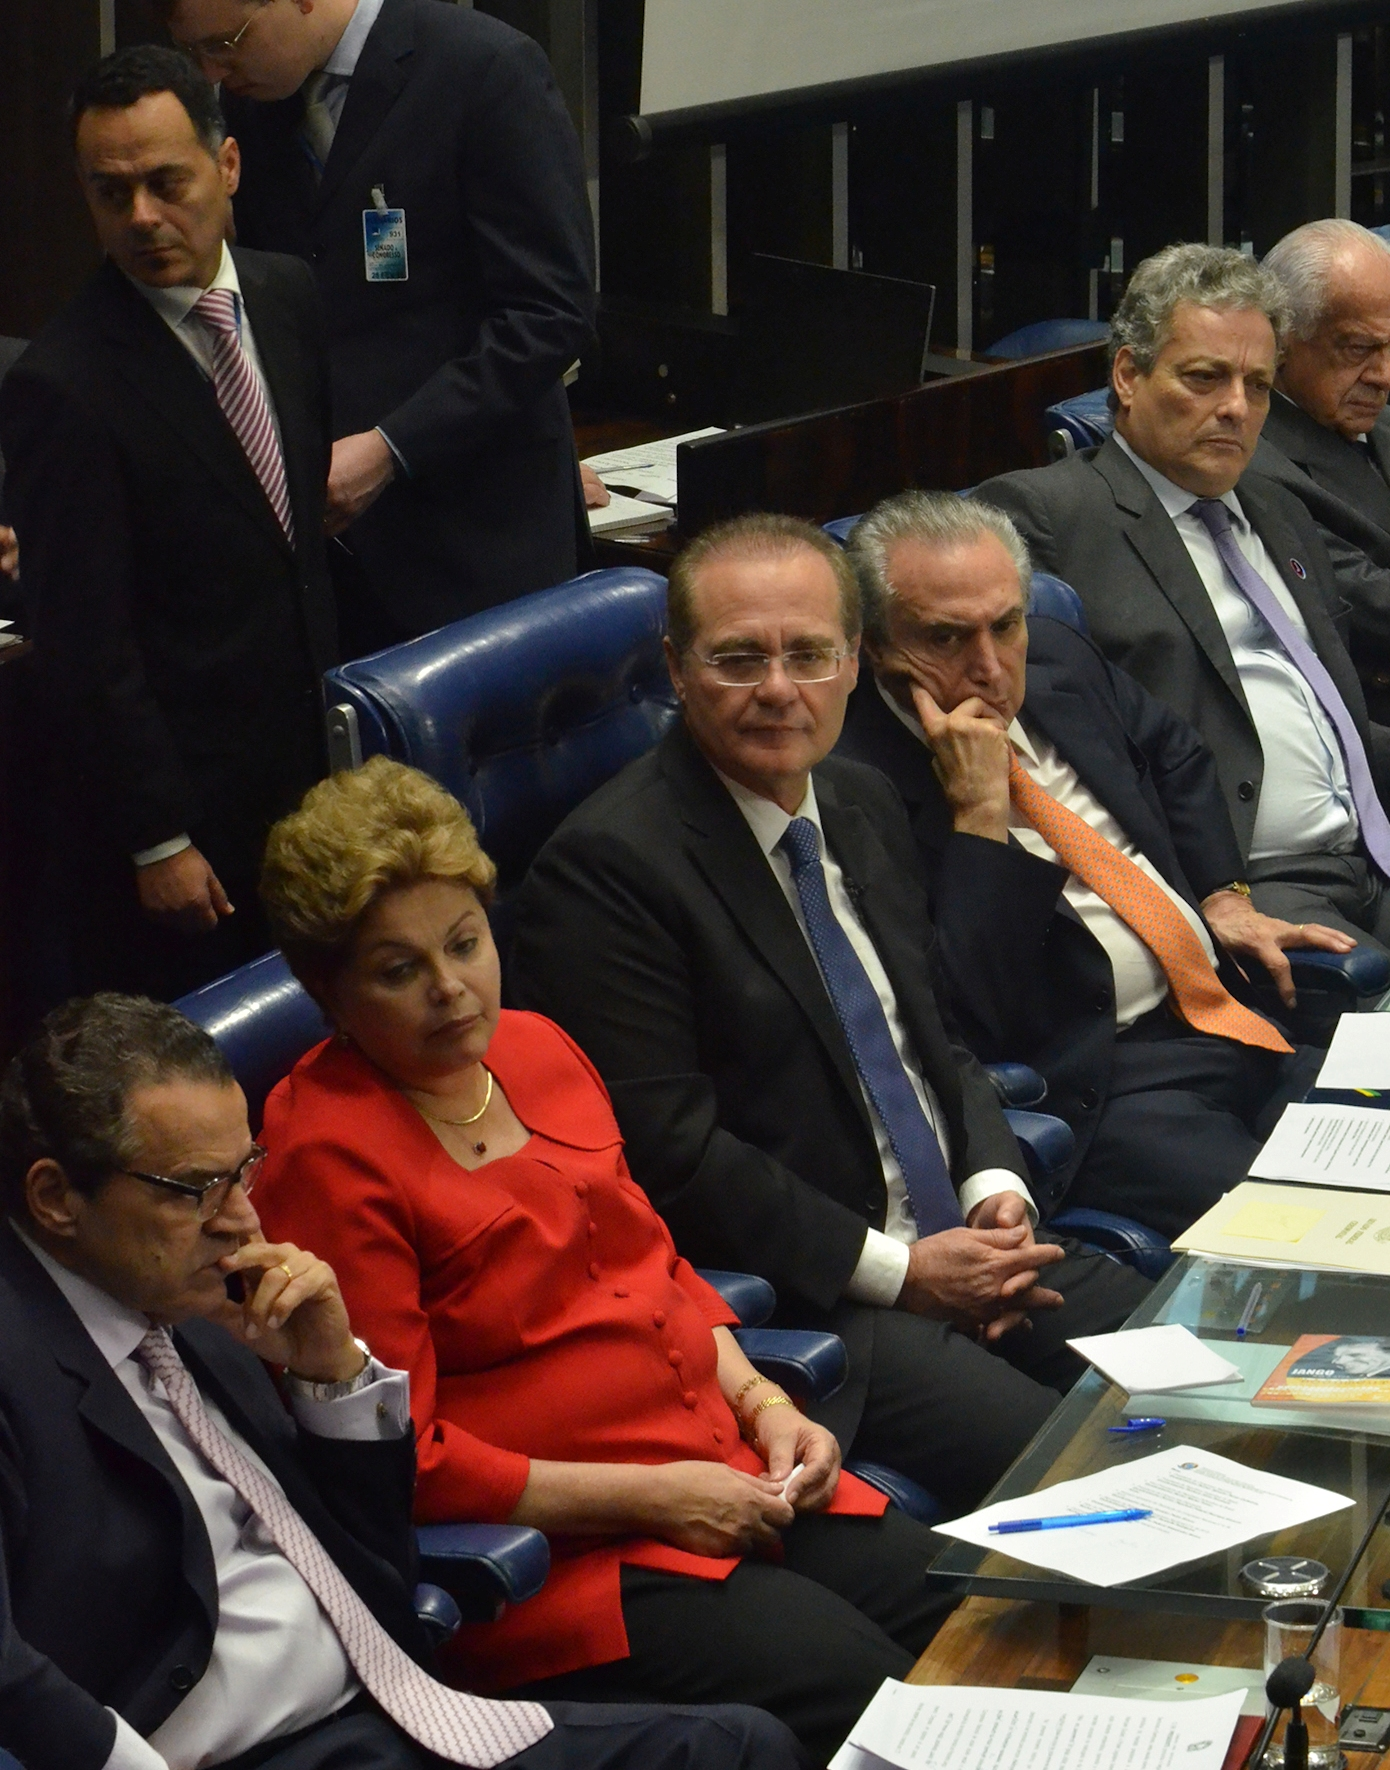 Alves, Rousseff and Calheiros in Congress